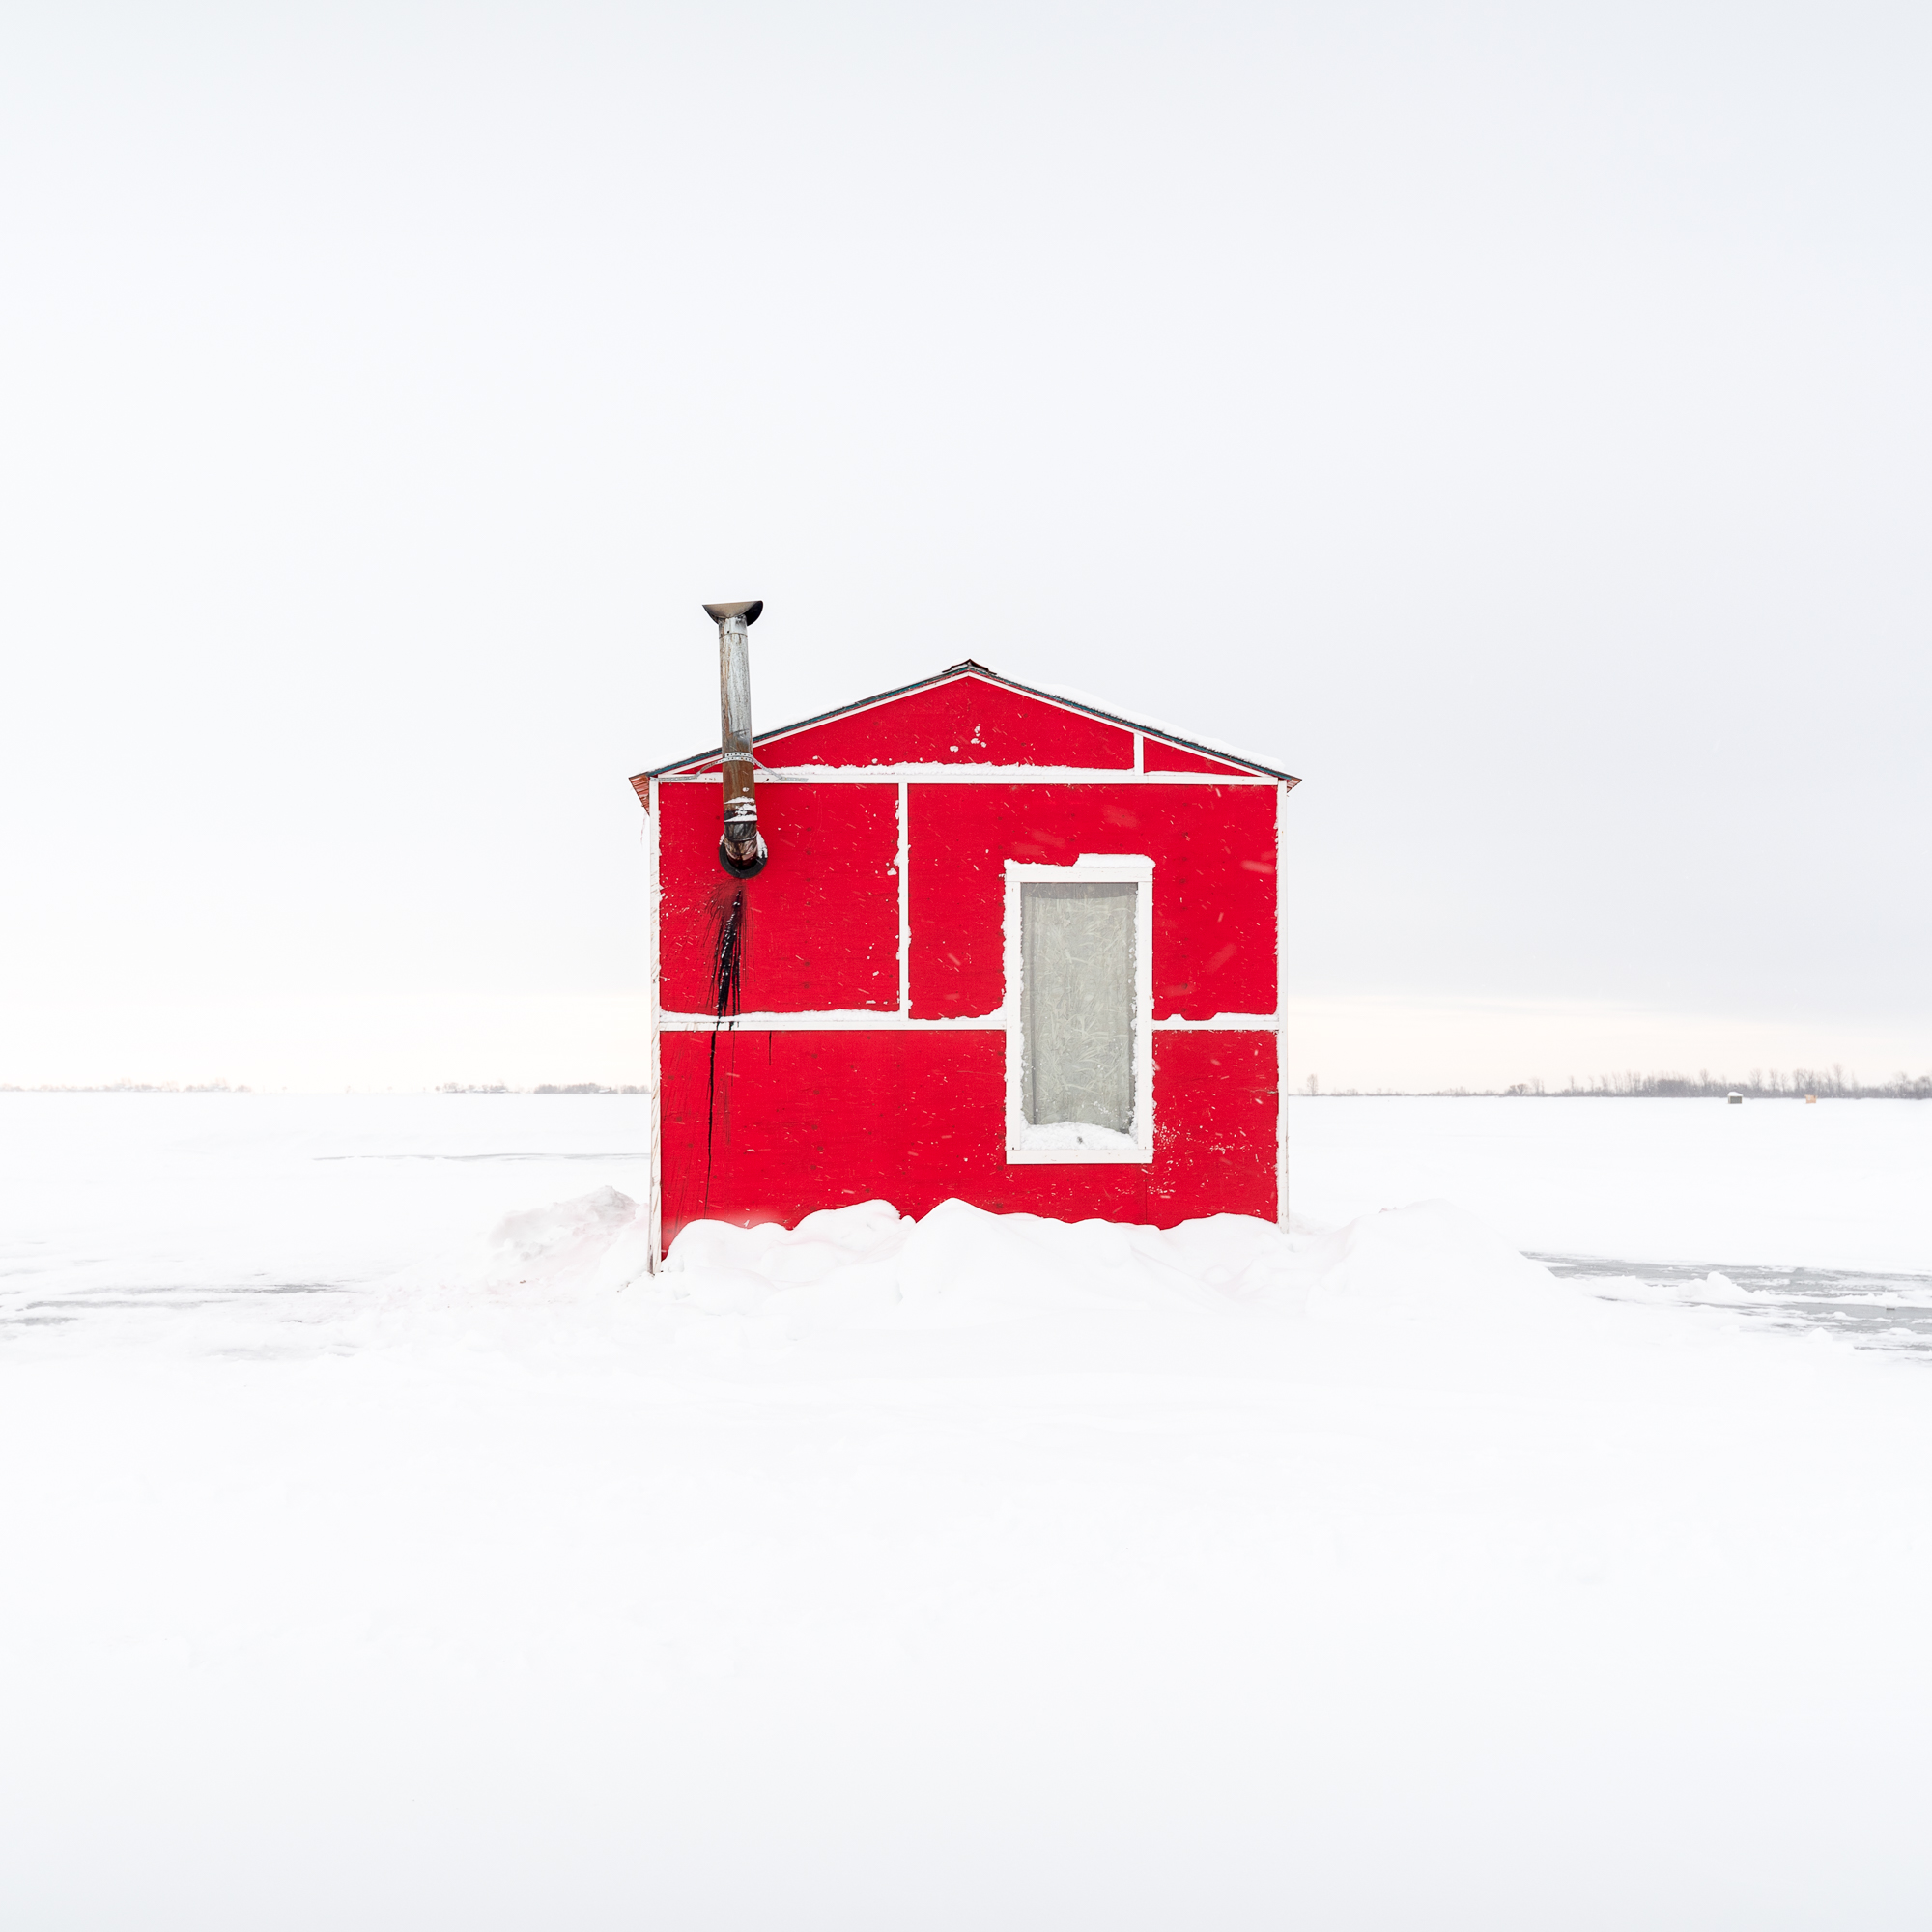 Ice Fishing Huts - An invitation from an old friend to visit Manitoba turns into a great trip to photograph ice fishing huts on Lake Winnipeg.